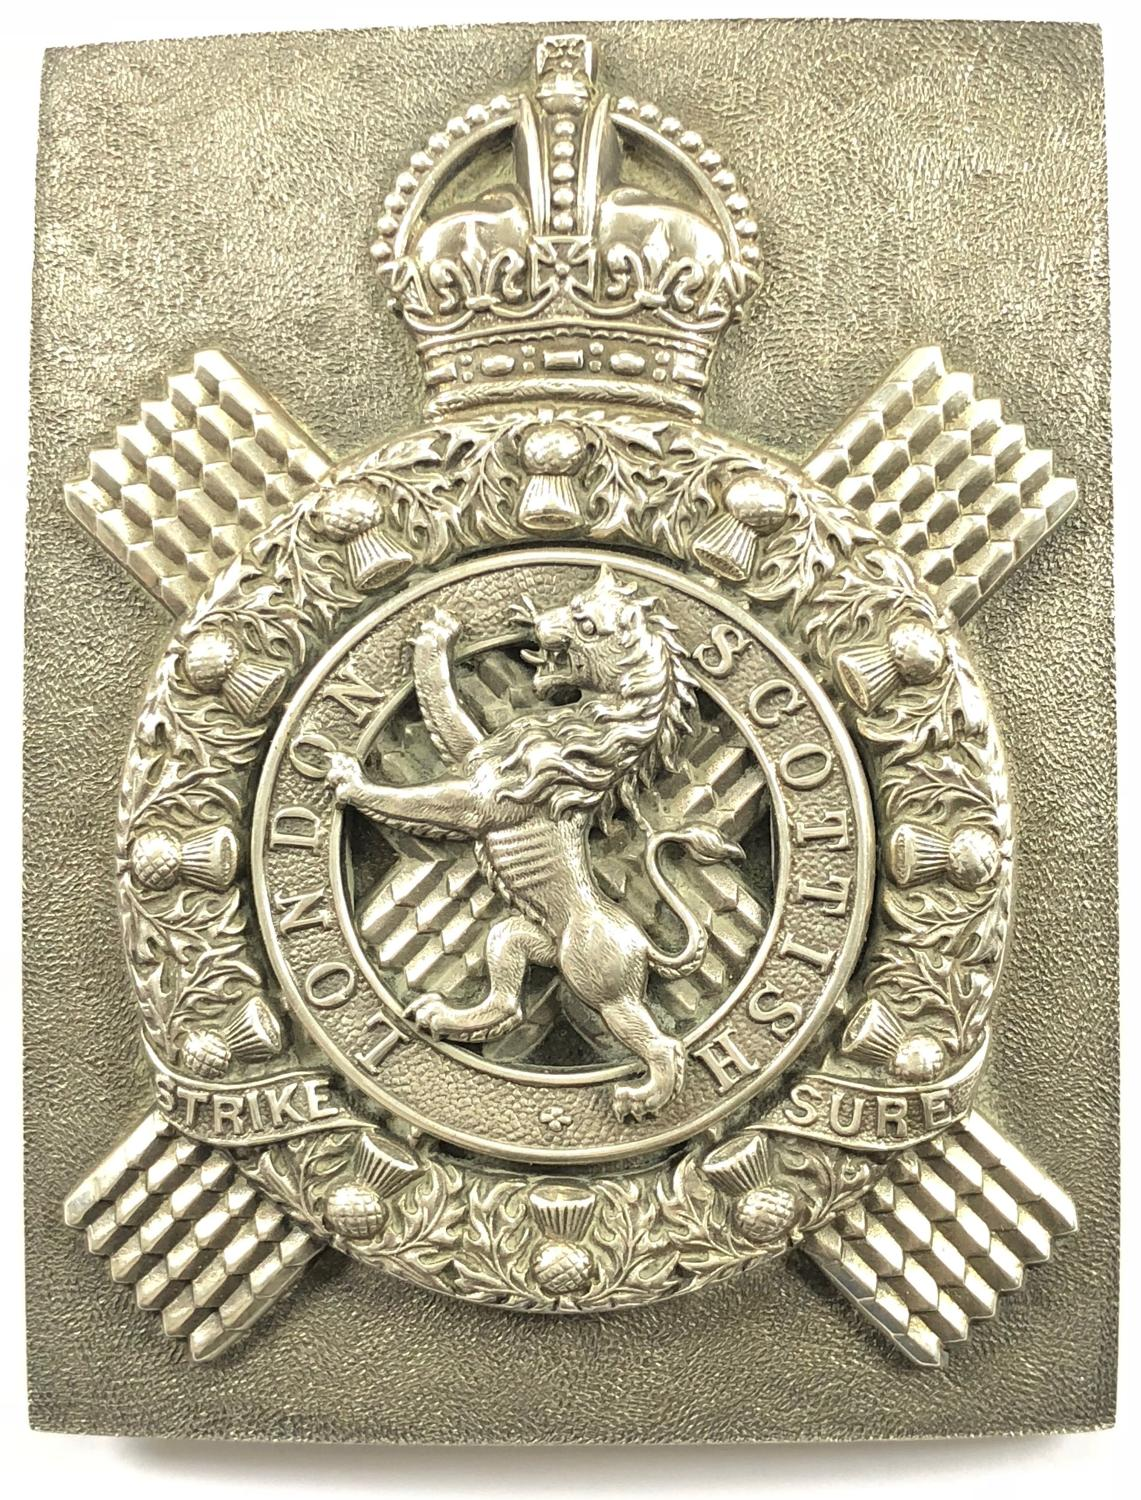 London Scottish Officer's silver shoulder belt plate circa 1910